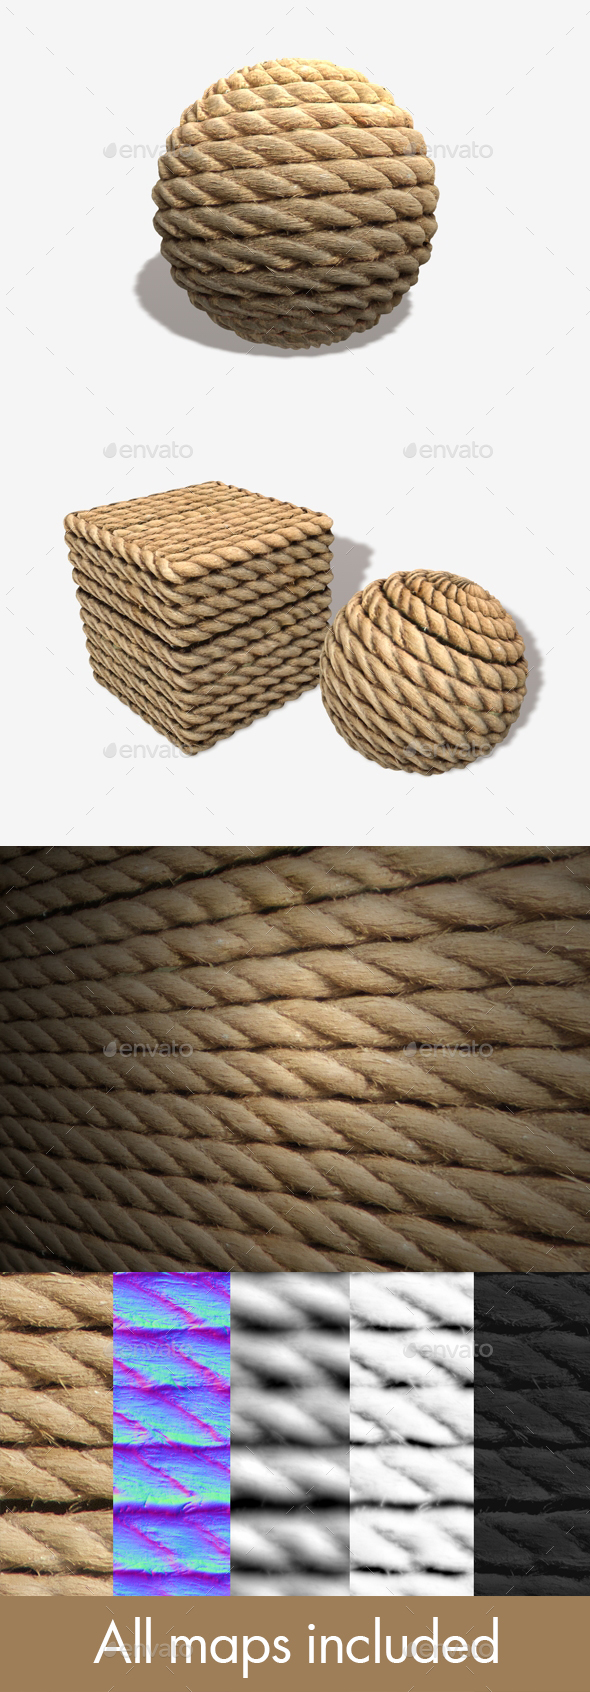 Wrapped Rope Seamless Texture - 3DOcean Item for Sale